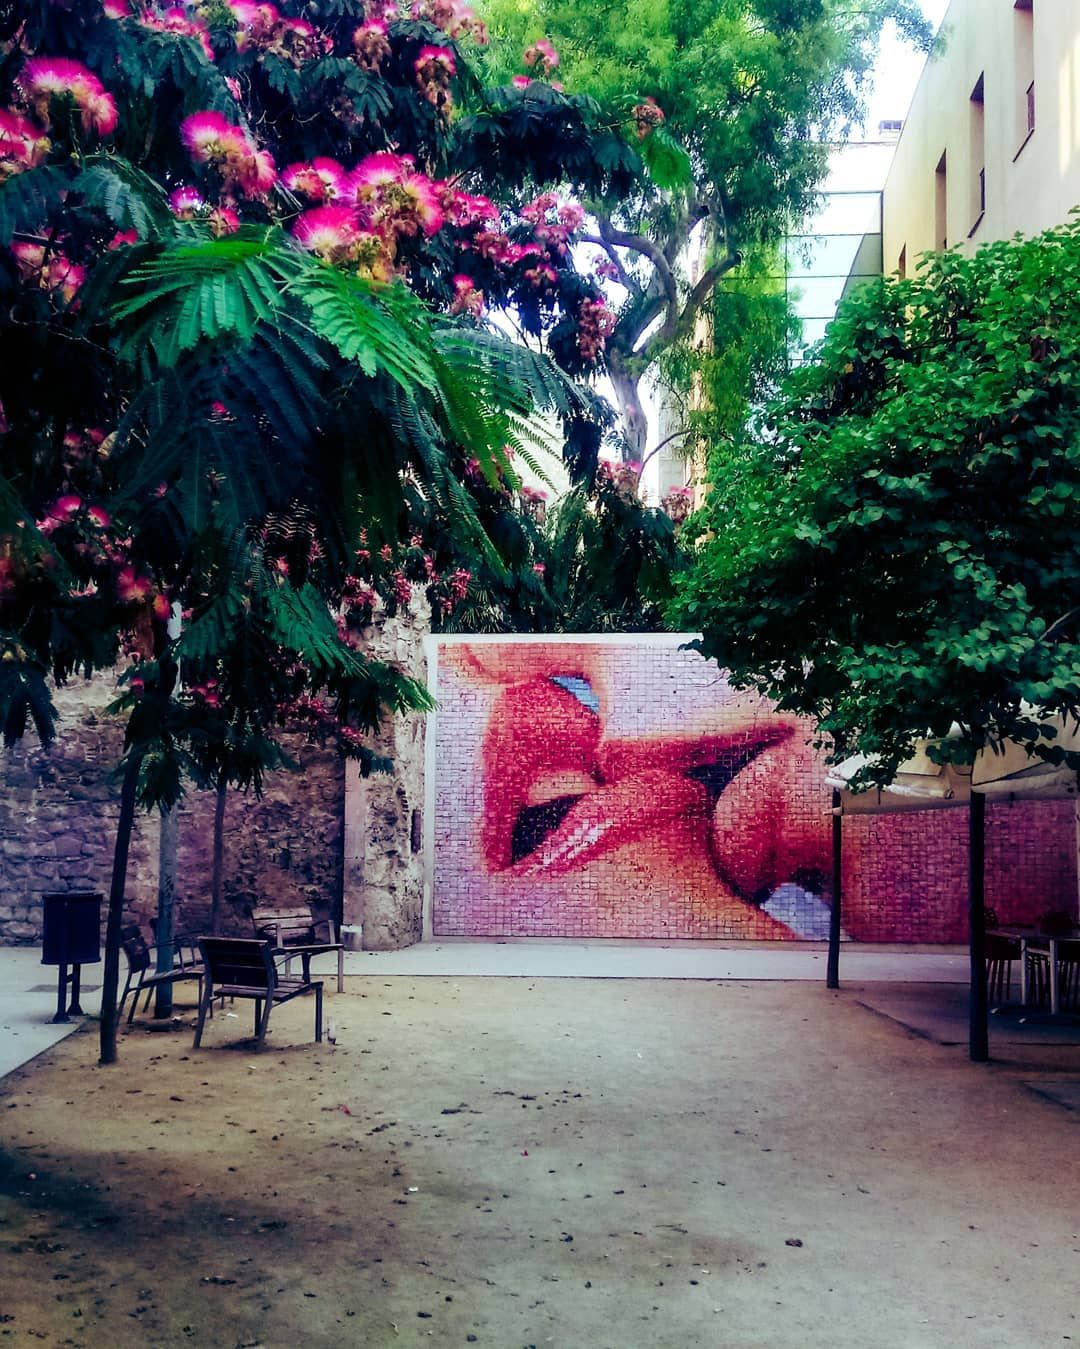 Photo by: @millsolsson in #Barcelona with #BCNmoltmes #love #square #art #kiss